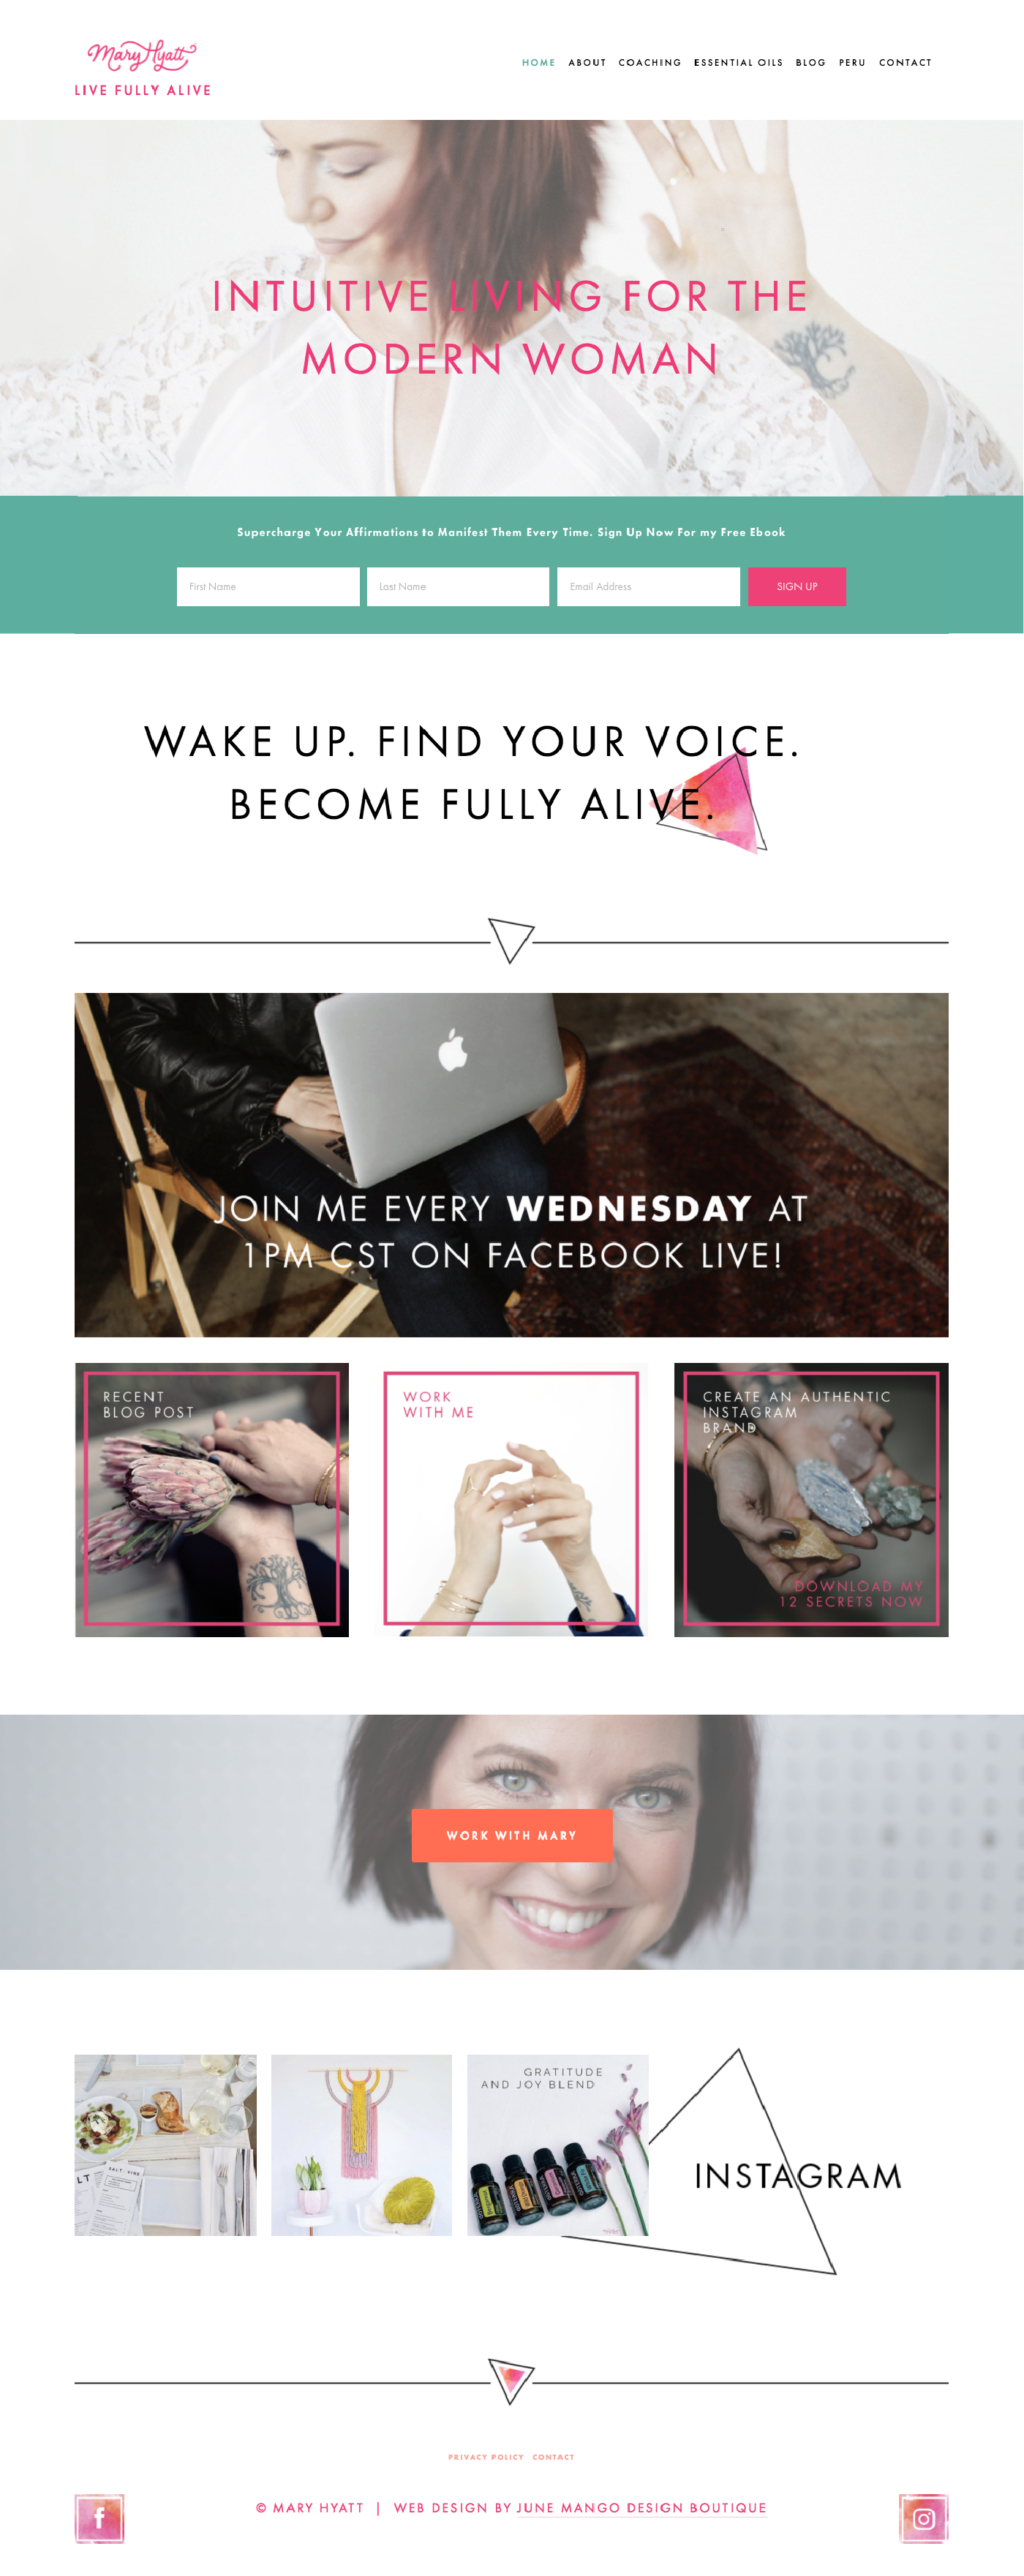 Mary-Hyatt-life-coach-go-live-in-5-web-design-homepage-01.png